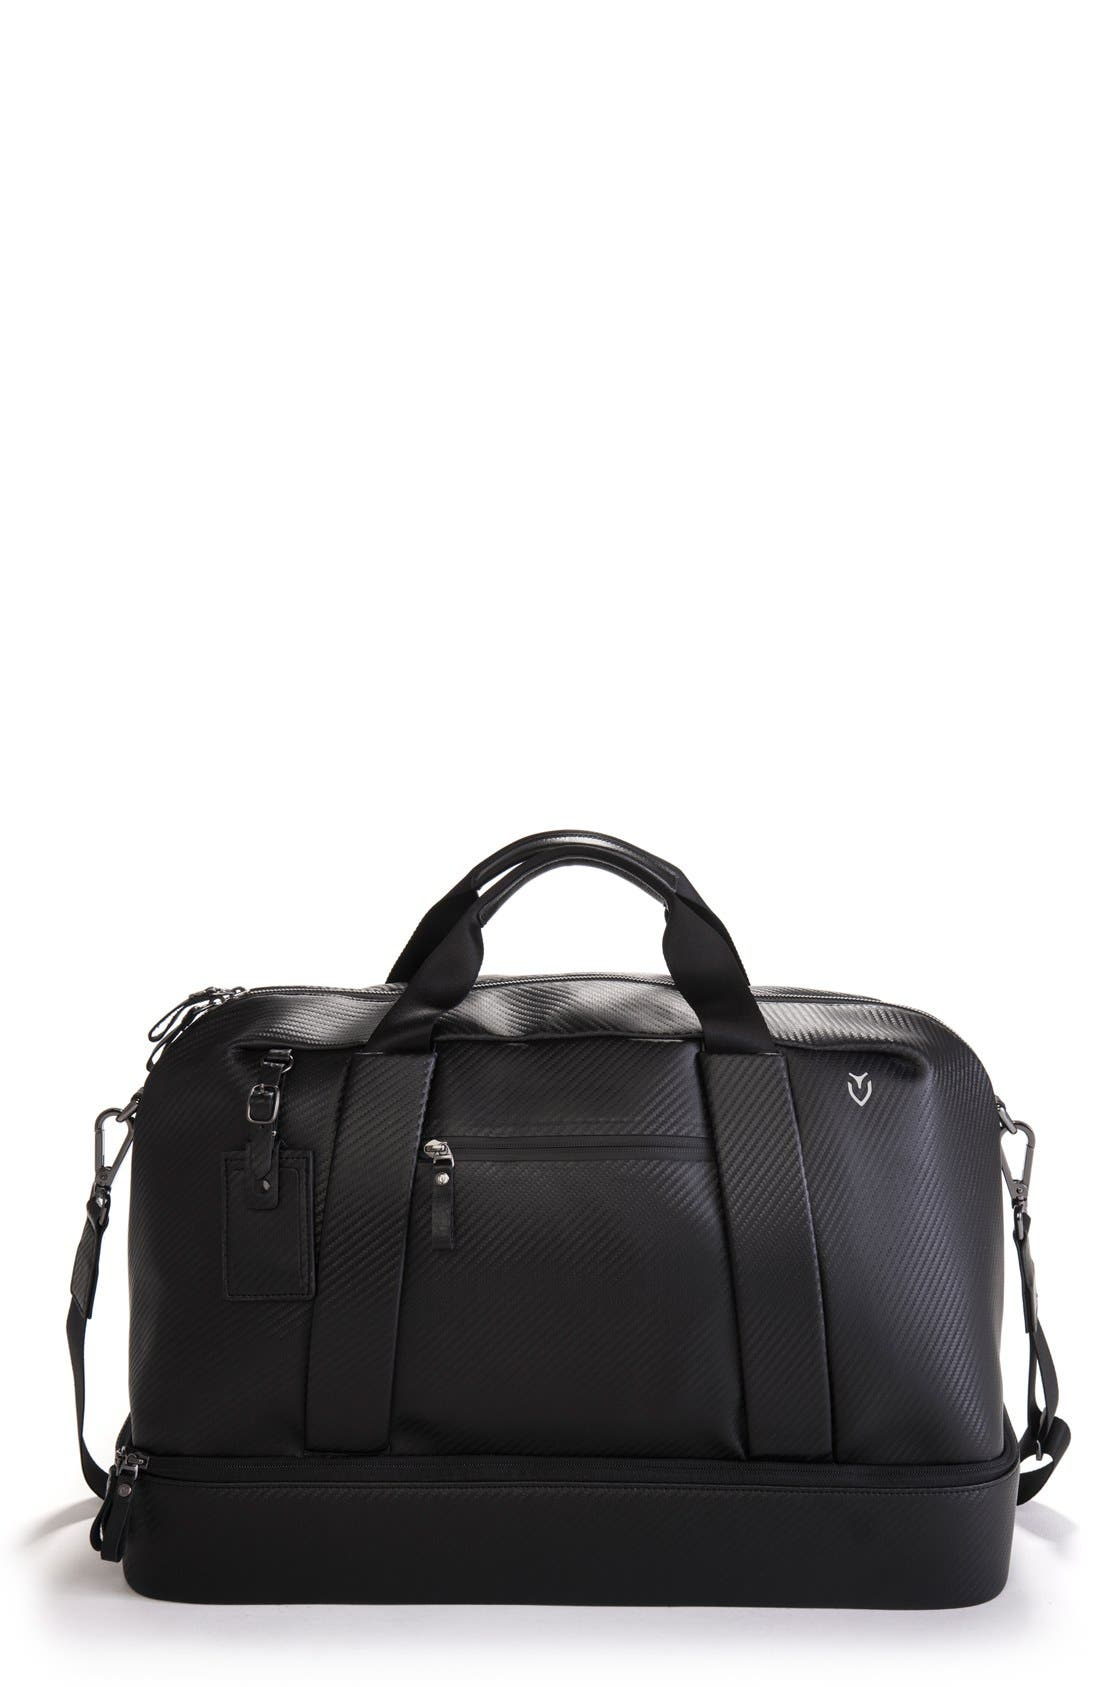 Vessel Signature Large Boston Duffel Bag